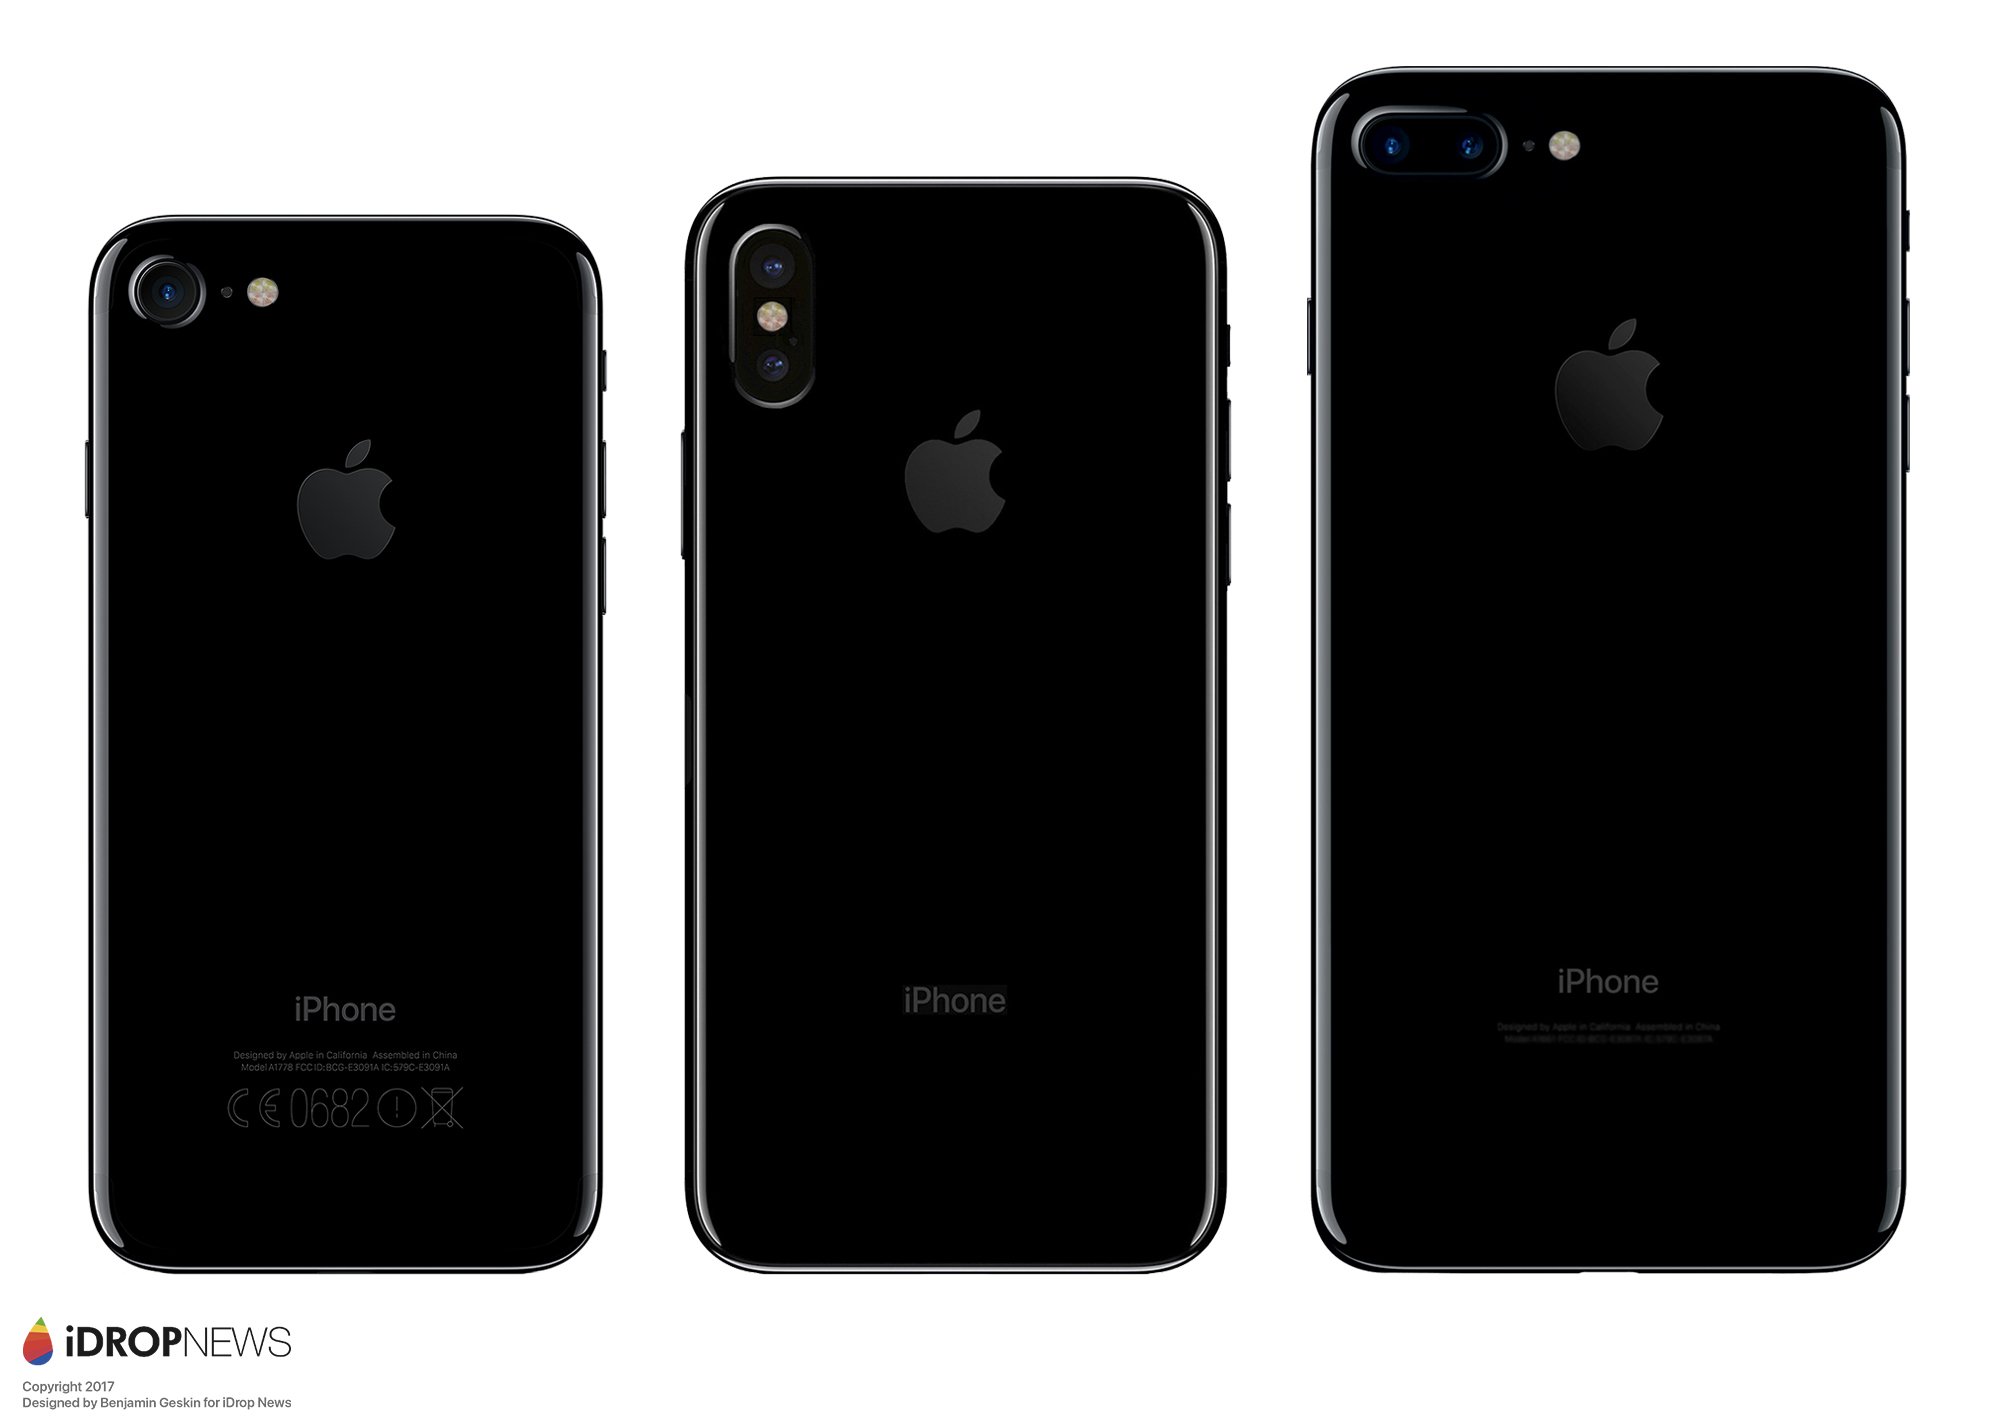 iPhone 8 Size Comparison